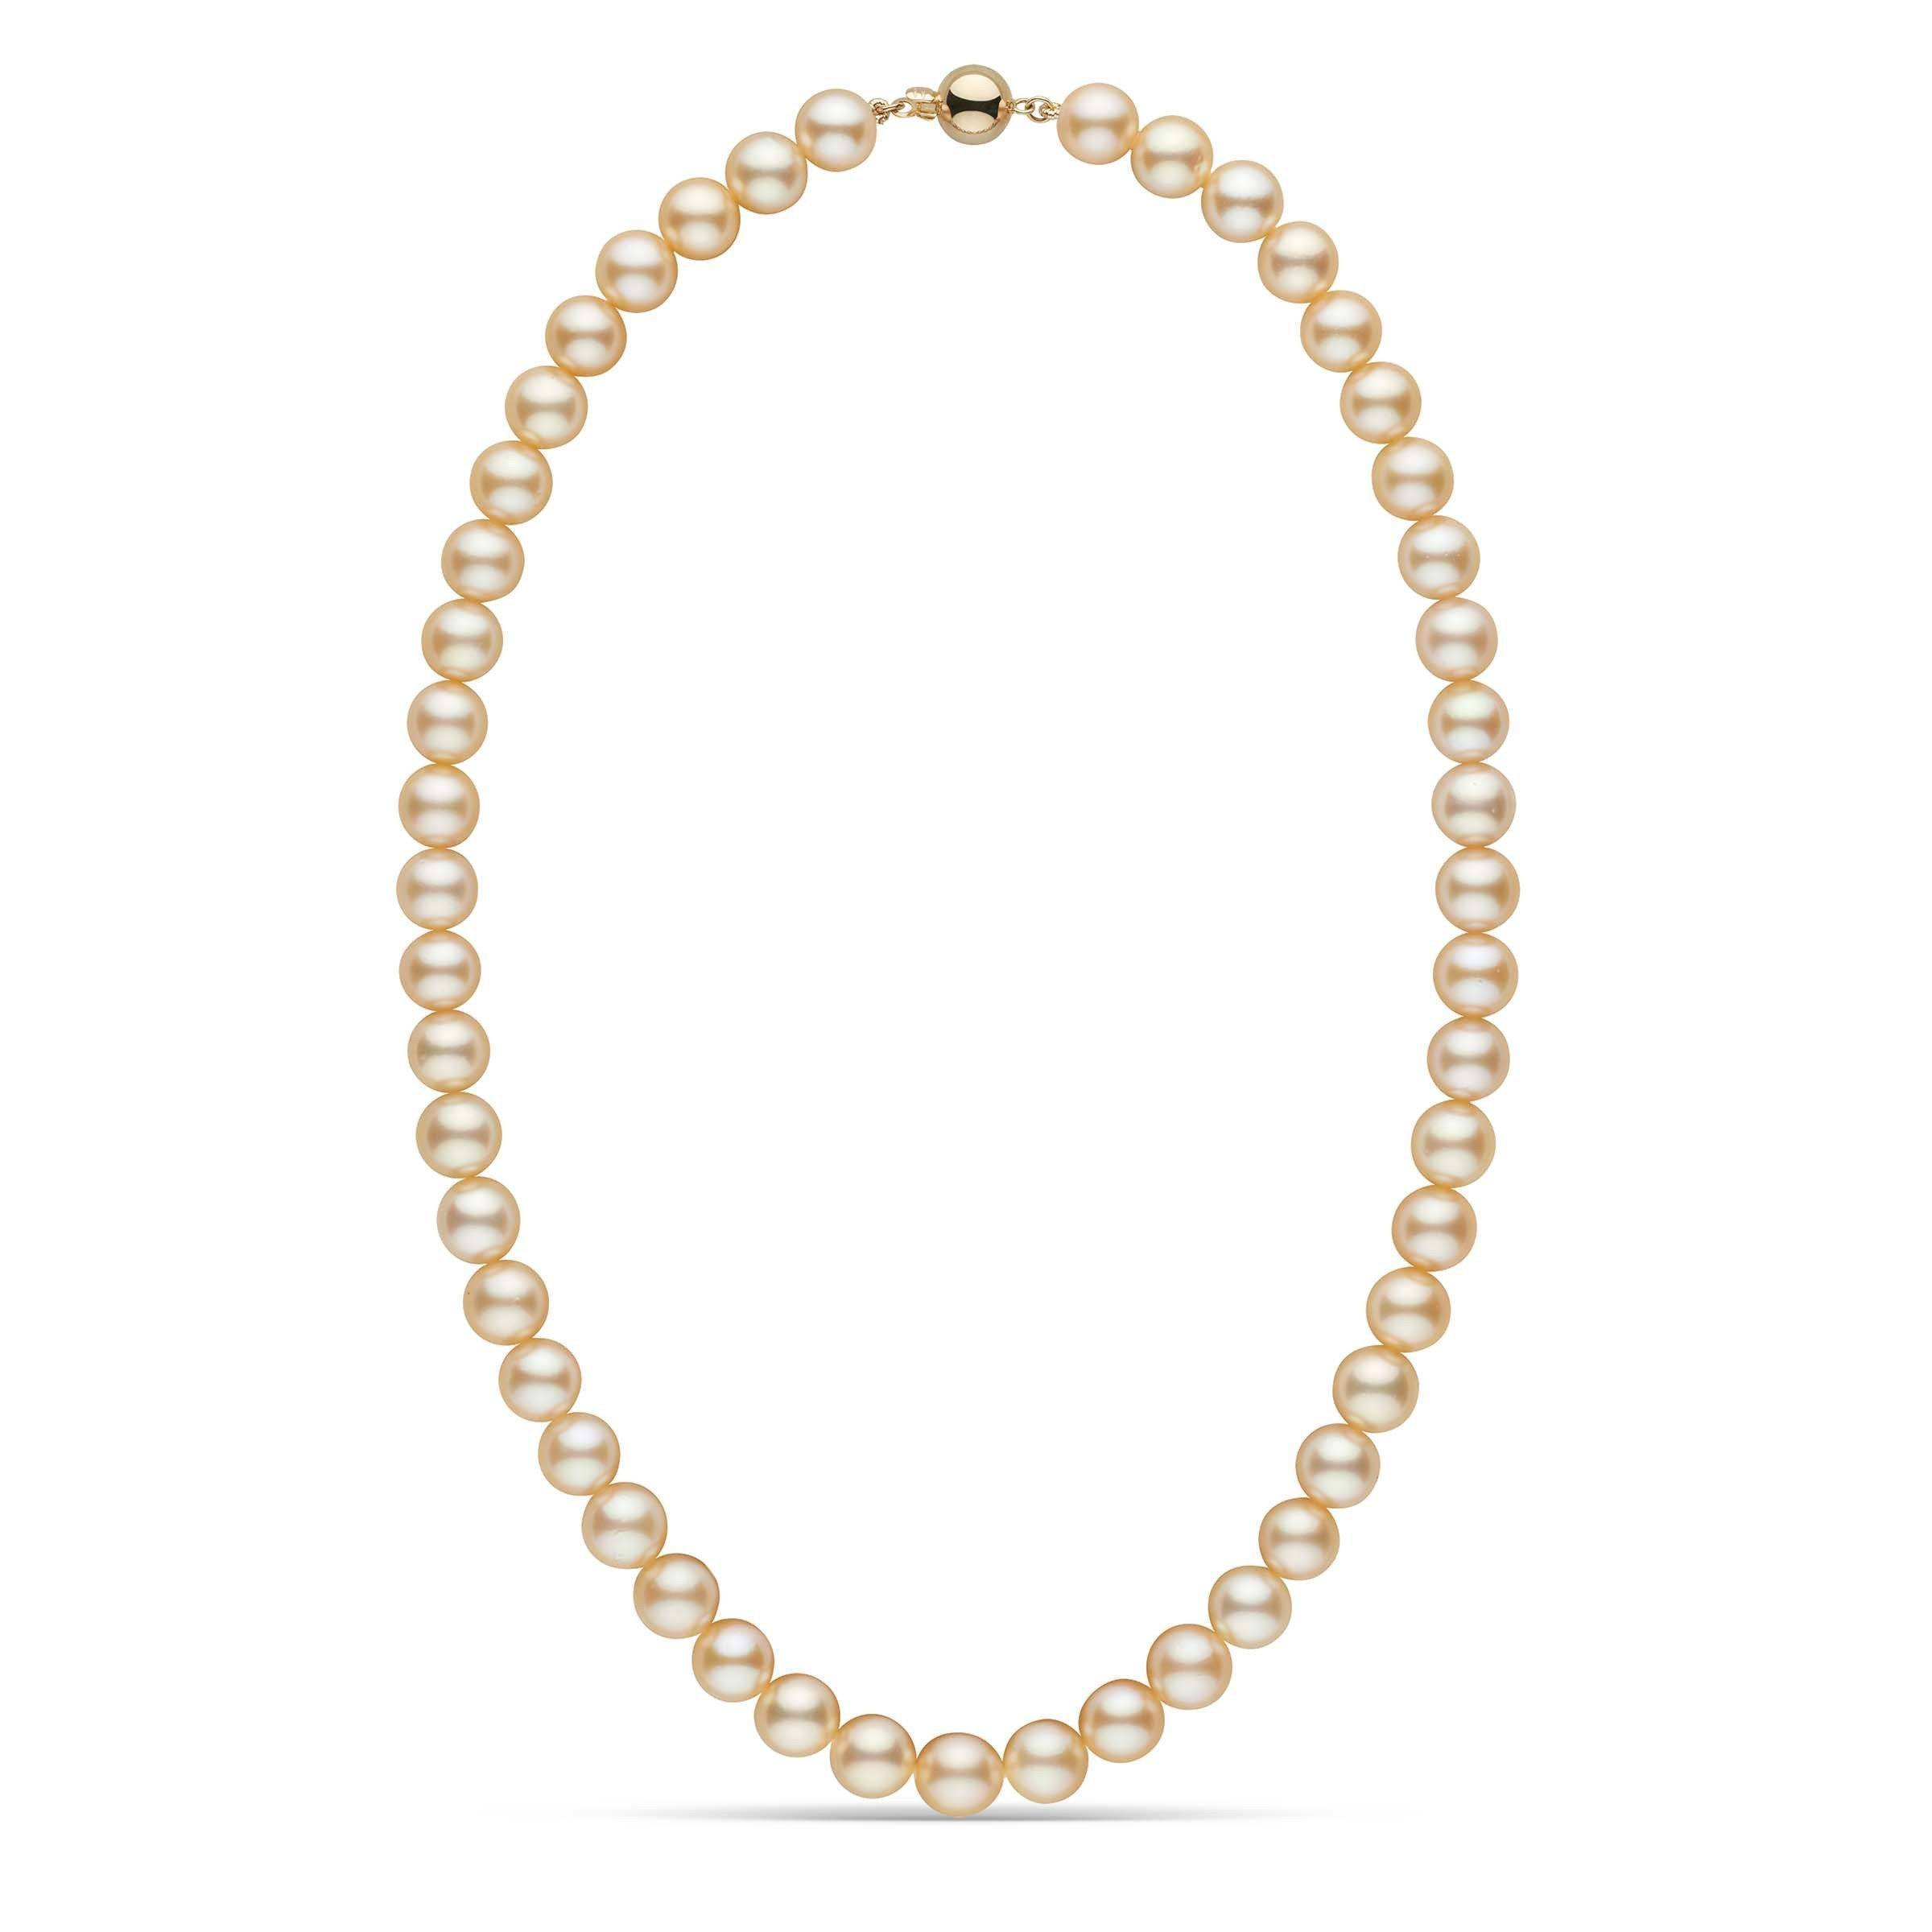 8.0-8.5 mm Natural Gold Akoya Pearl Necklace